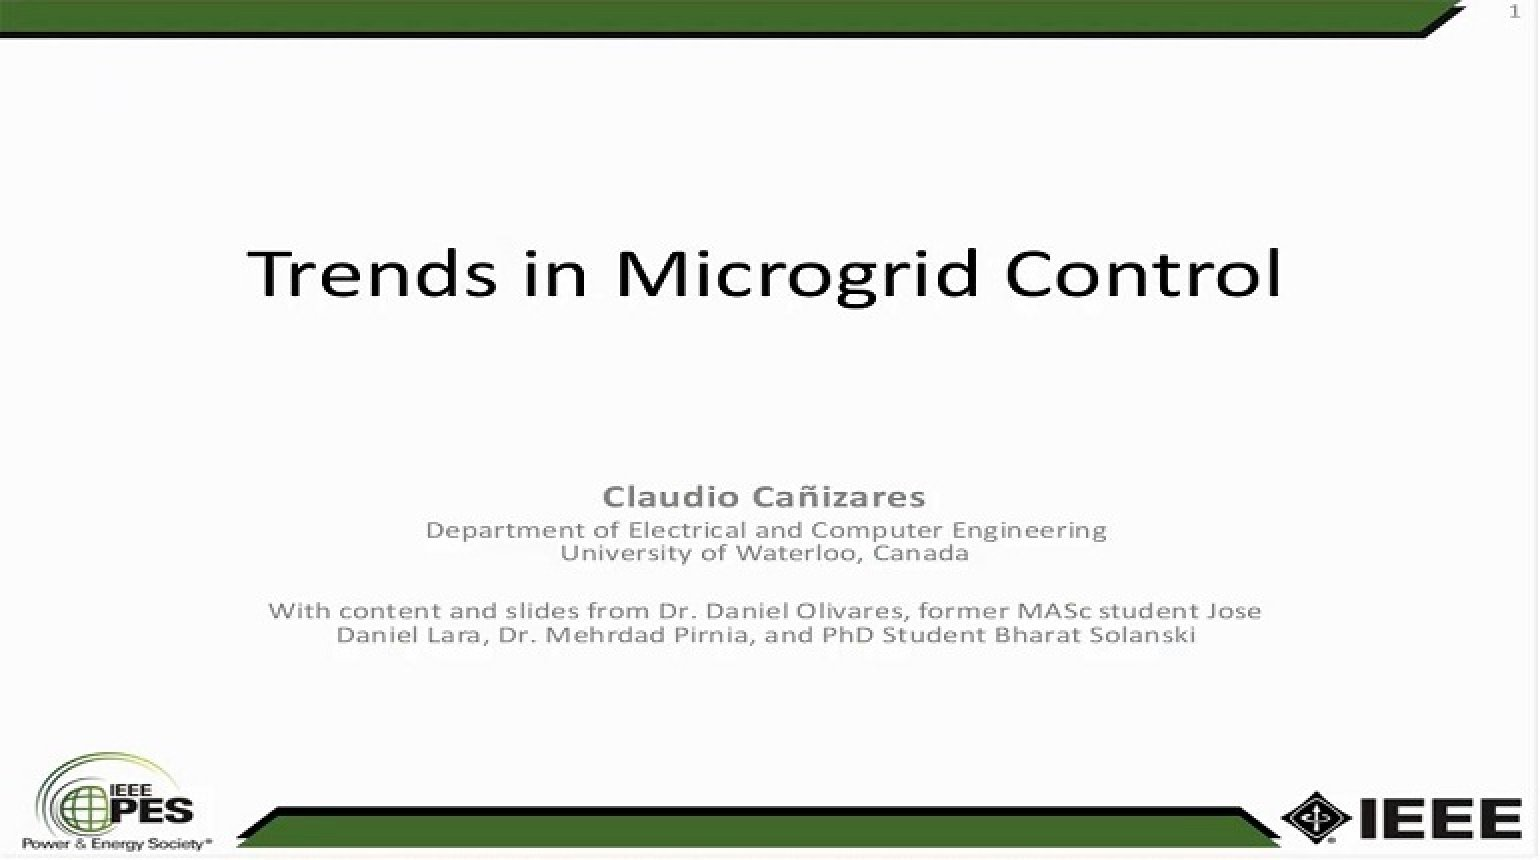 Trends in Microgrid Control